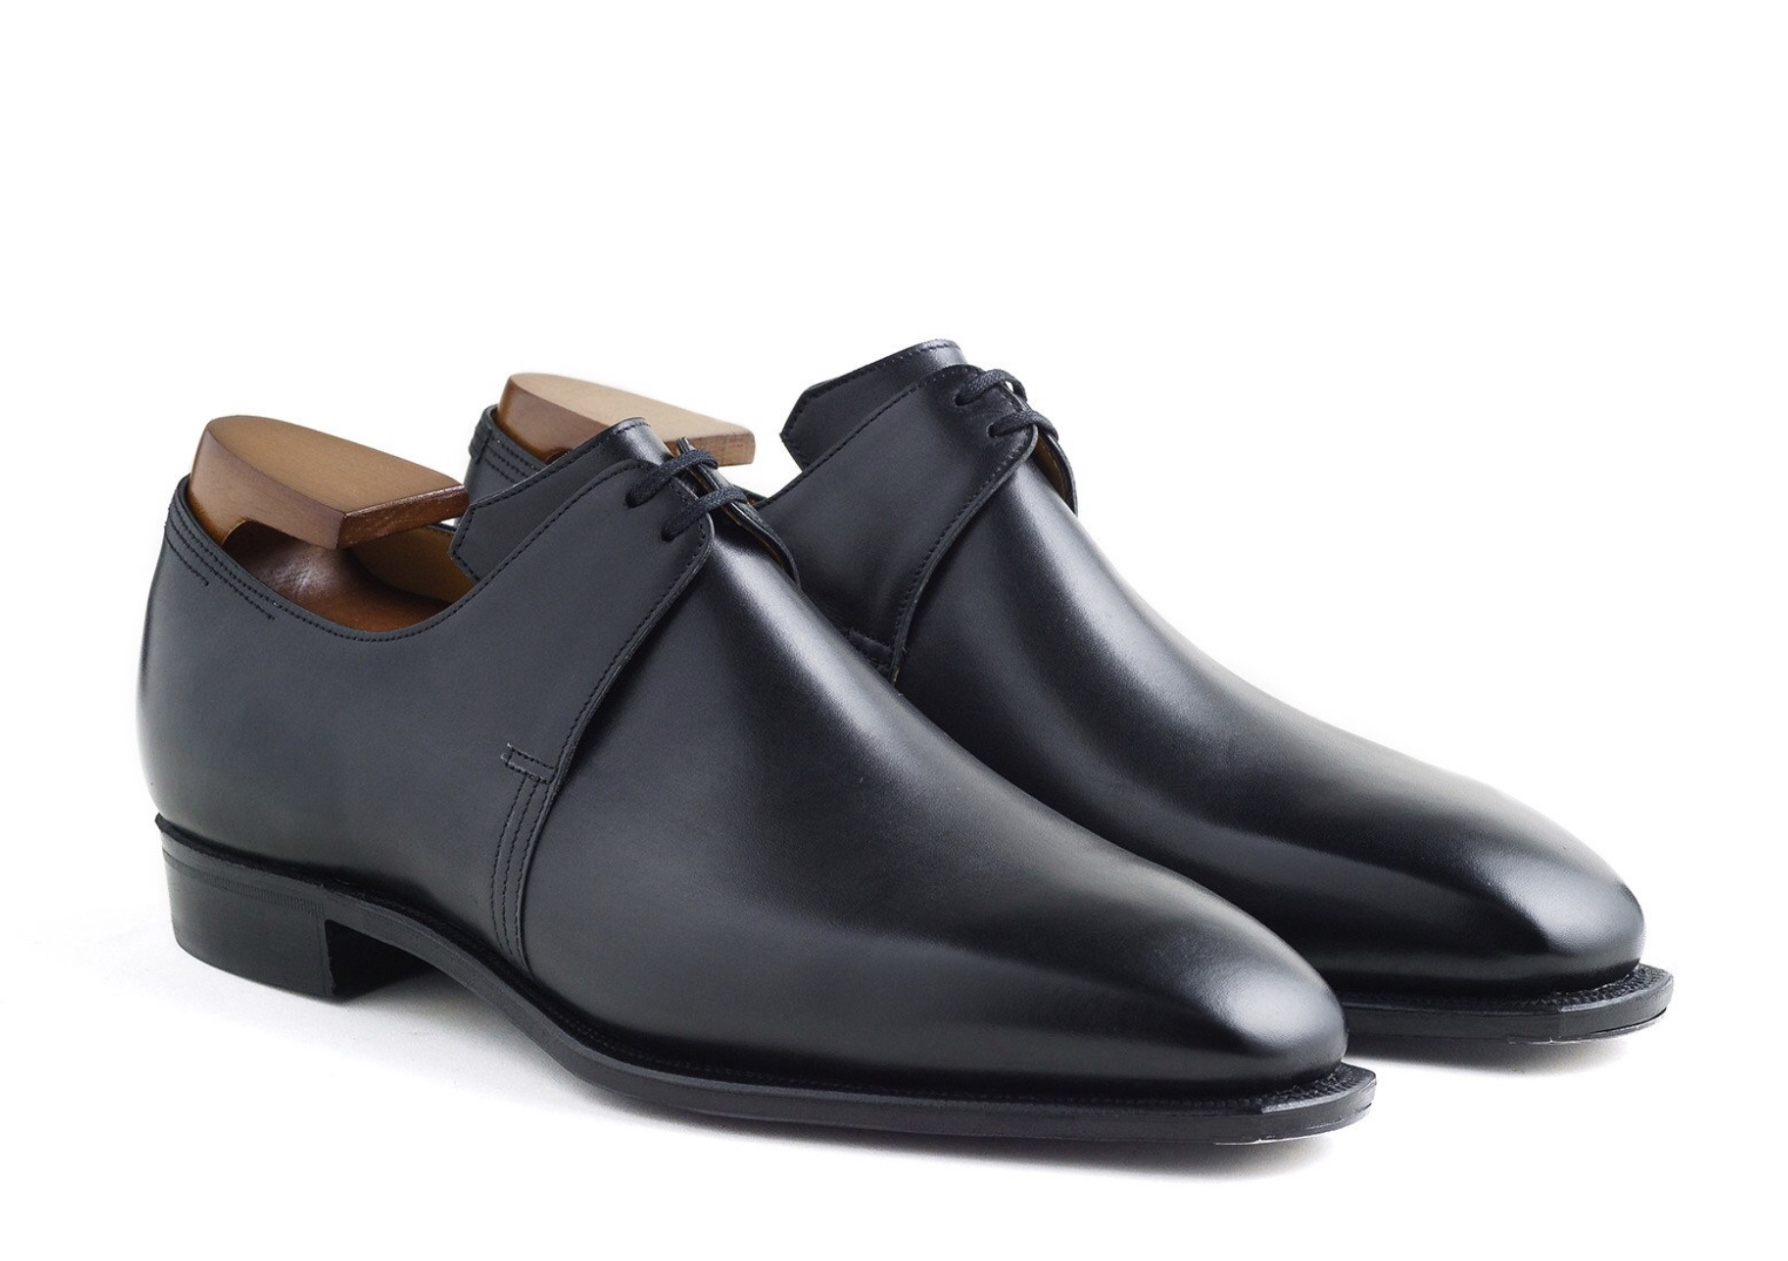 Corthay arca derby dress shoes Black calf